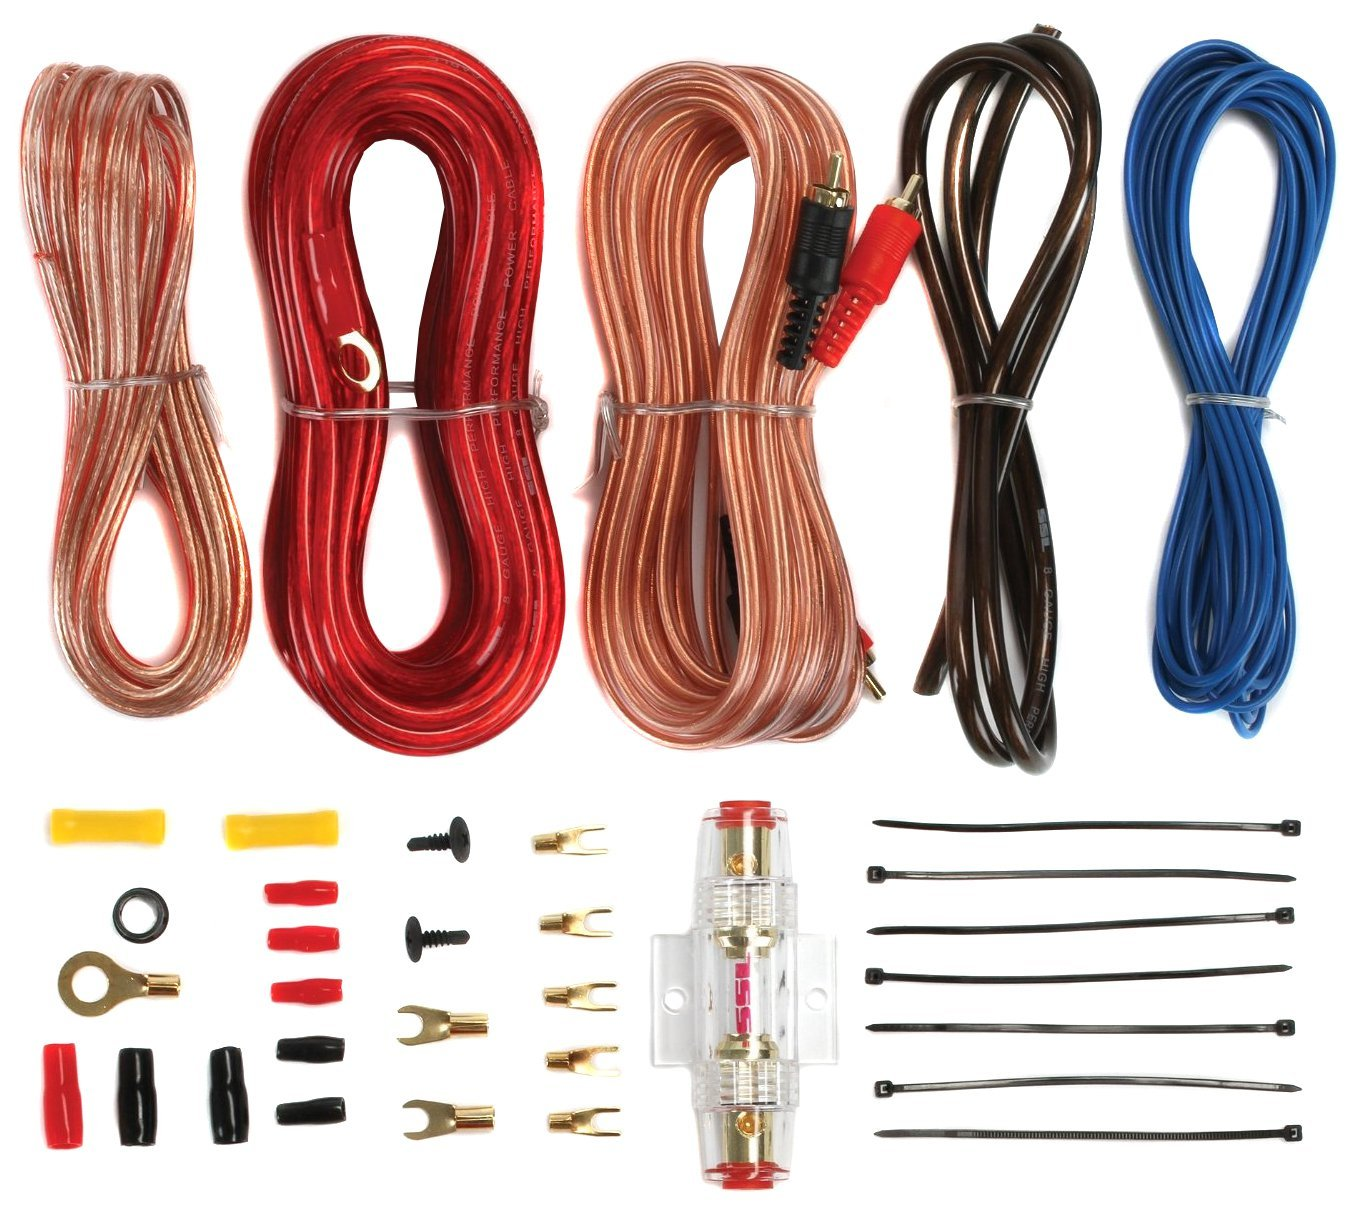 Car Audio Wiring Kits Library Gauge High Quality Lifier Power Wire Amazoncom New Boss Ar2000m 2000w Mono A B Amplifier